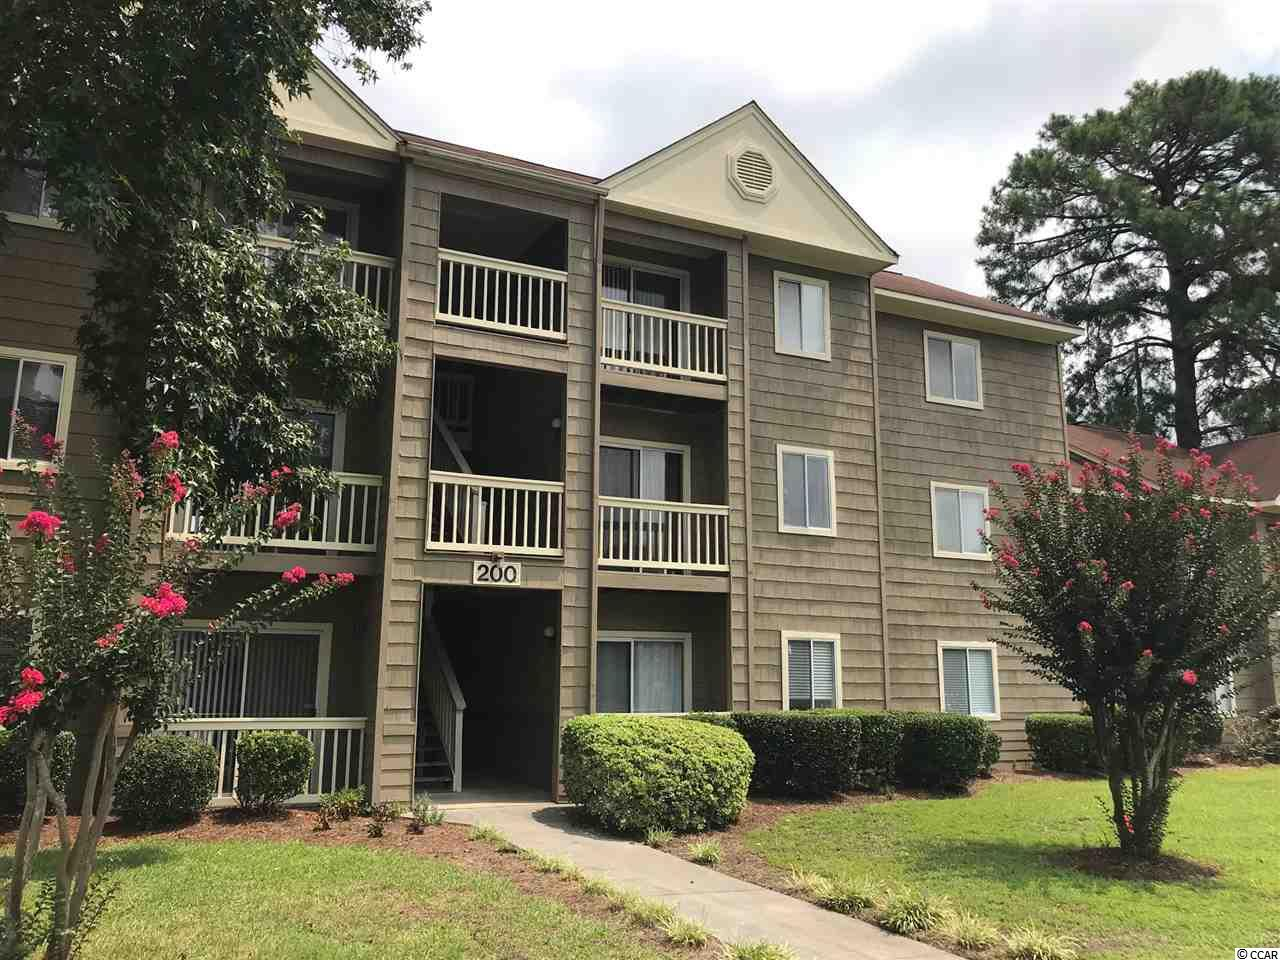 This beautiful 2 Bedroom 2 Full Bath Condo is a third floor unit with a beautiful view at Myrtle Greens. Myrtle Greens is conveniently located on Singleton Ridge road near Coastal Carolina University, Horry Georgetown Technical College, and Conway Hospital. This complex is only a fifteen minute ride to the beach, 5 min ride to Tanger Outlet Shopping center, and close to many several restaurants and attractions. This condo has been freshly painted and has brand new carpet, also very close to the community pool and amenities. Schedule your showing today!